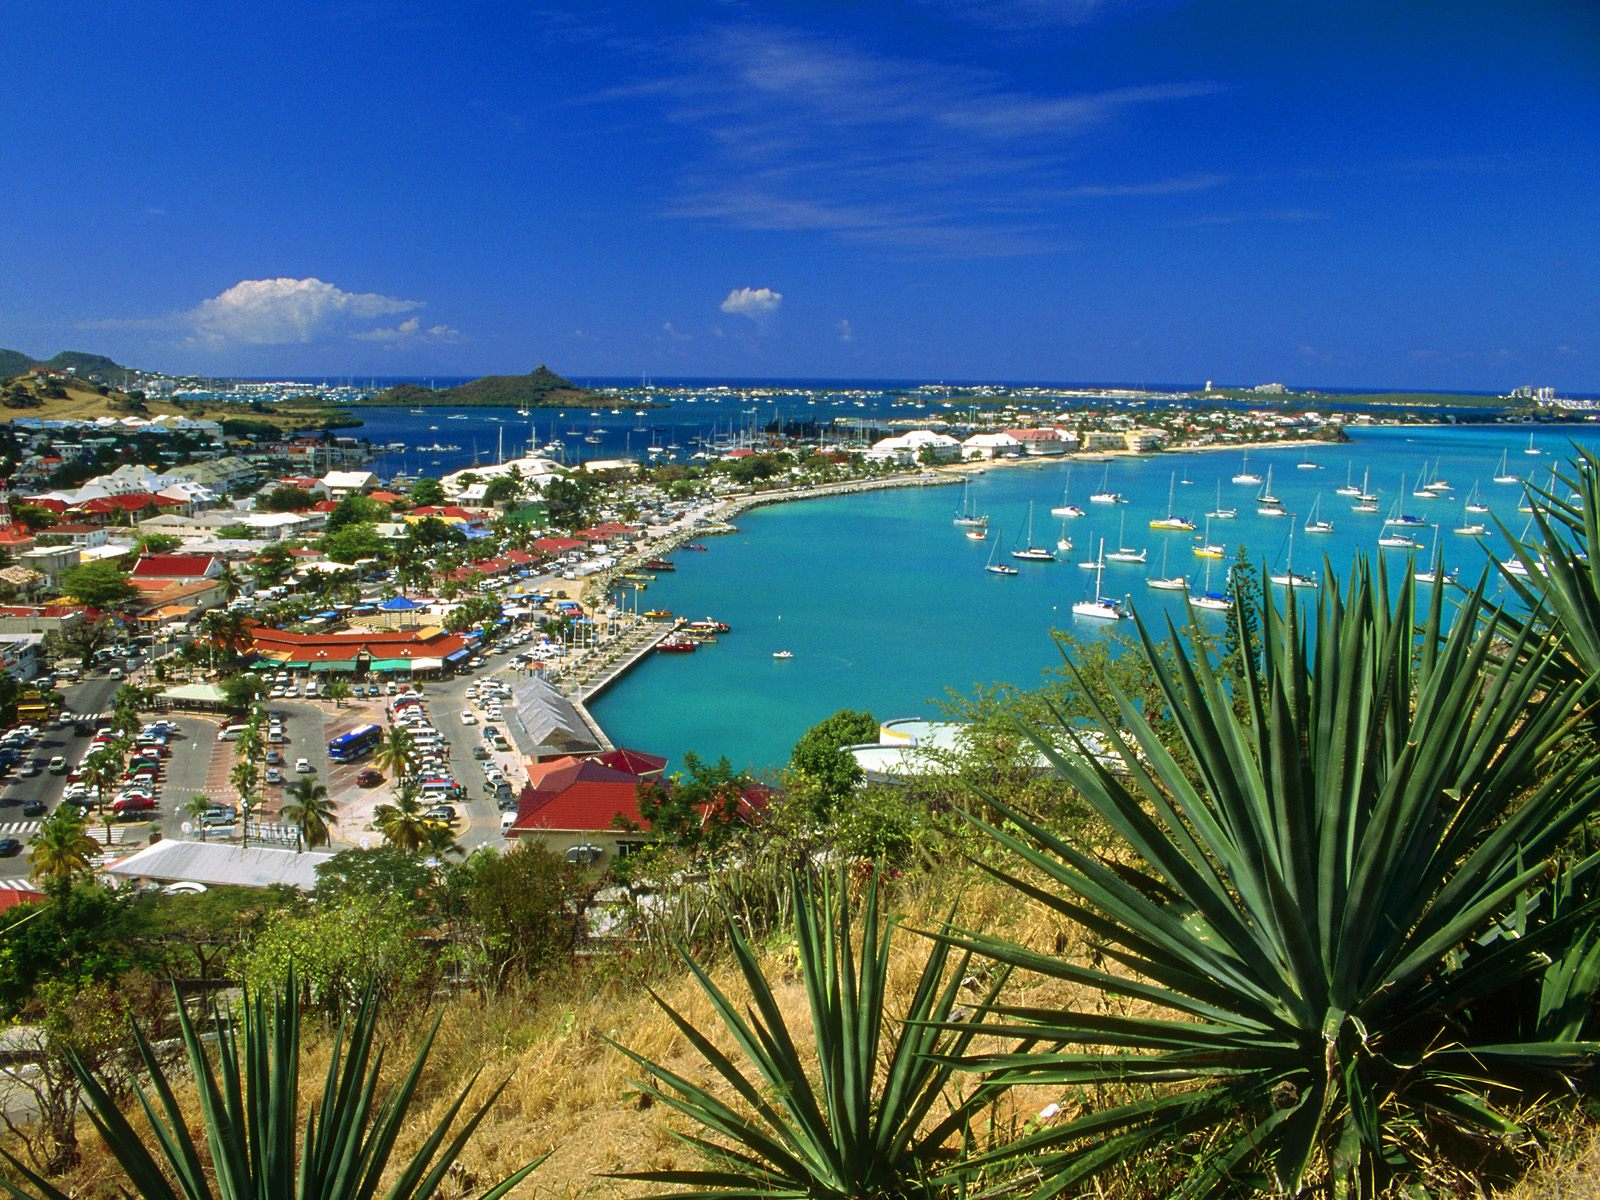 Marigot Bay West Indies138432666 - Marigot Bay West Indies - West, Marigot, Indies, Creek